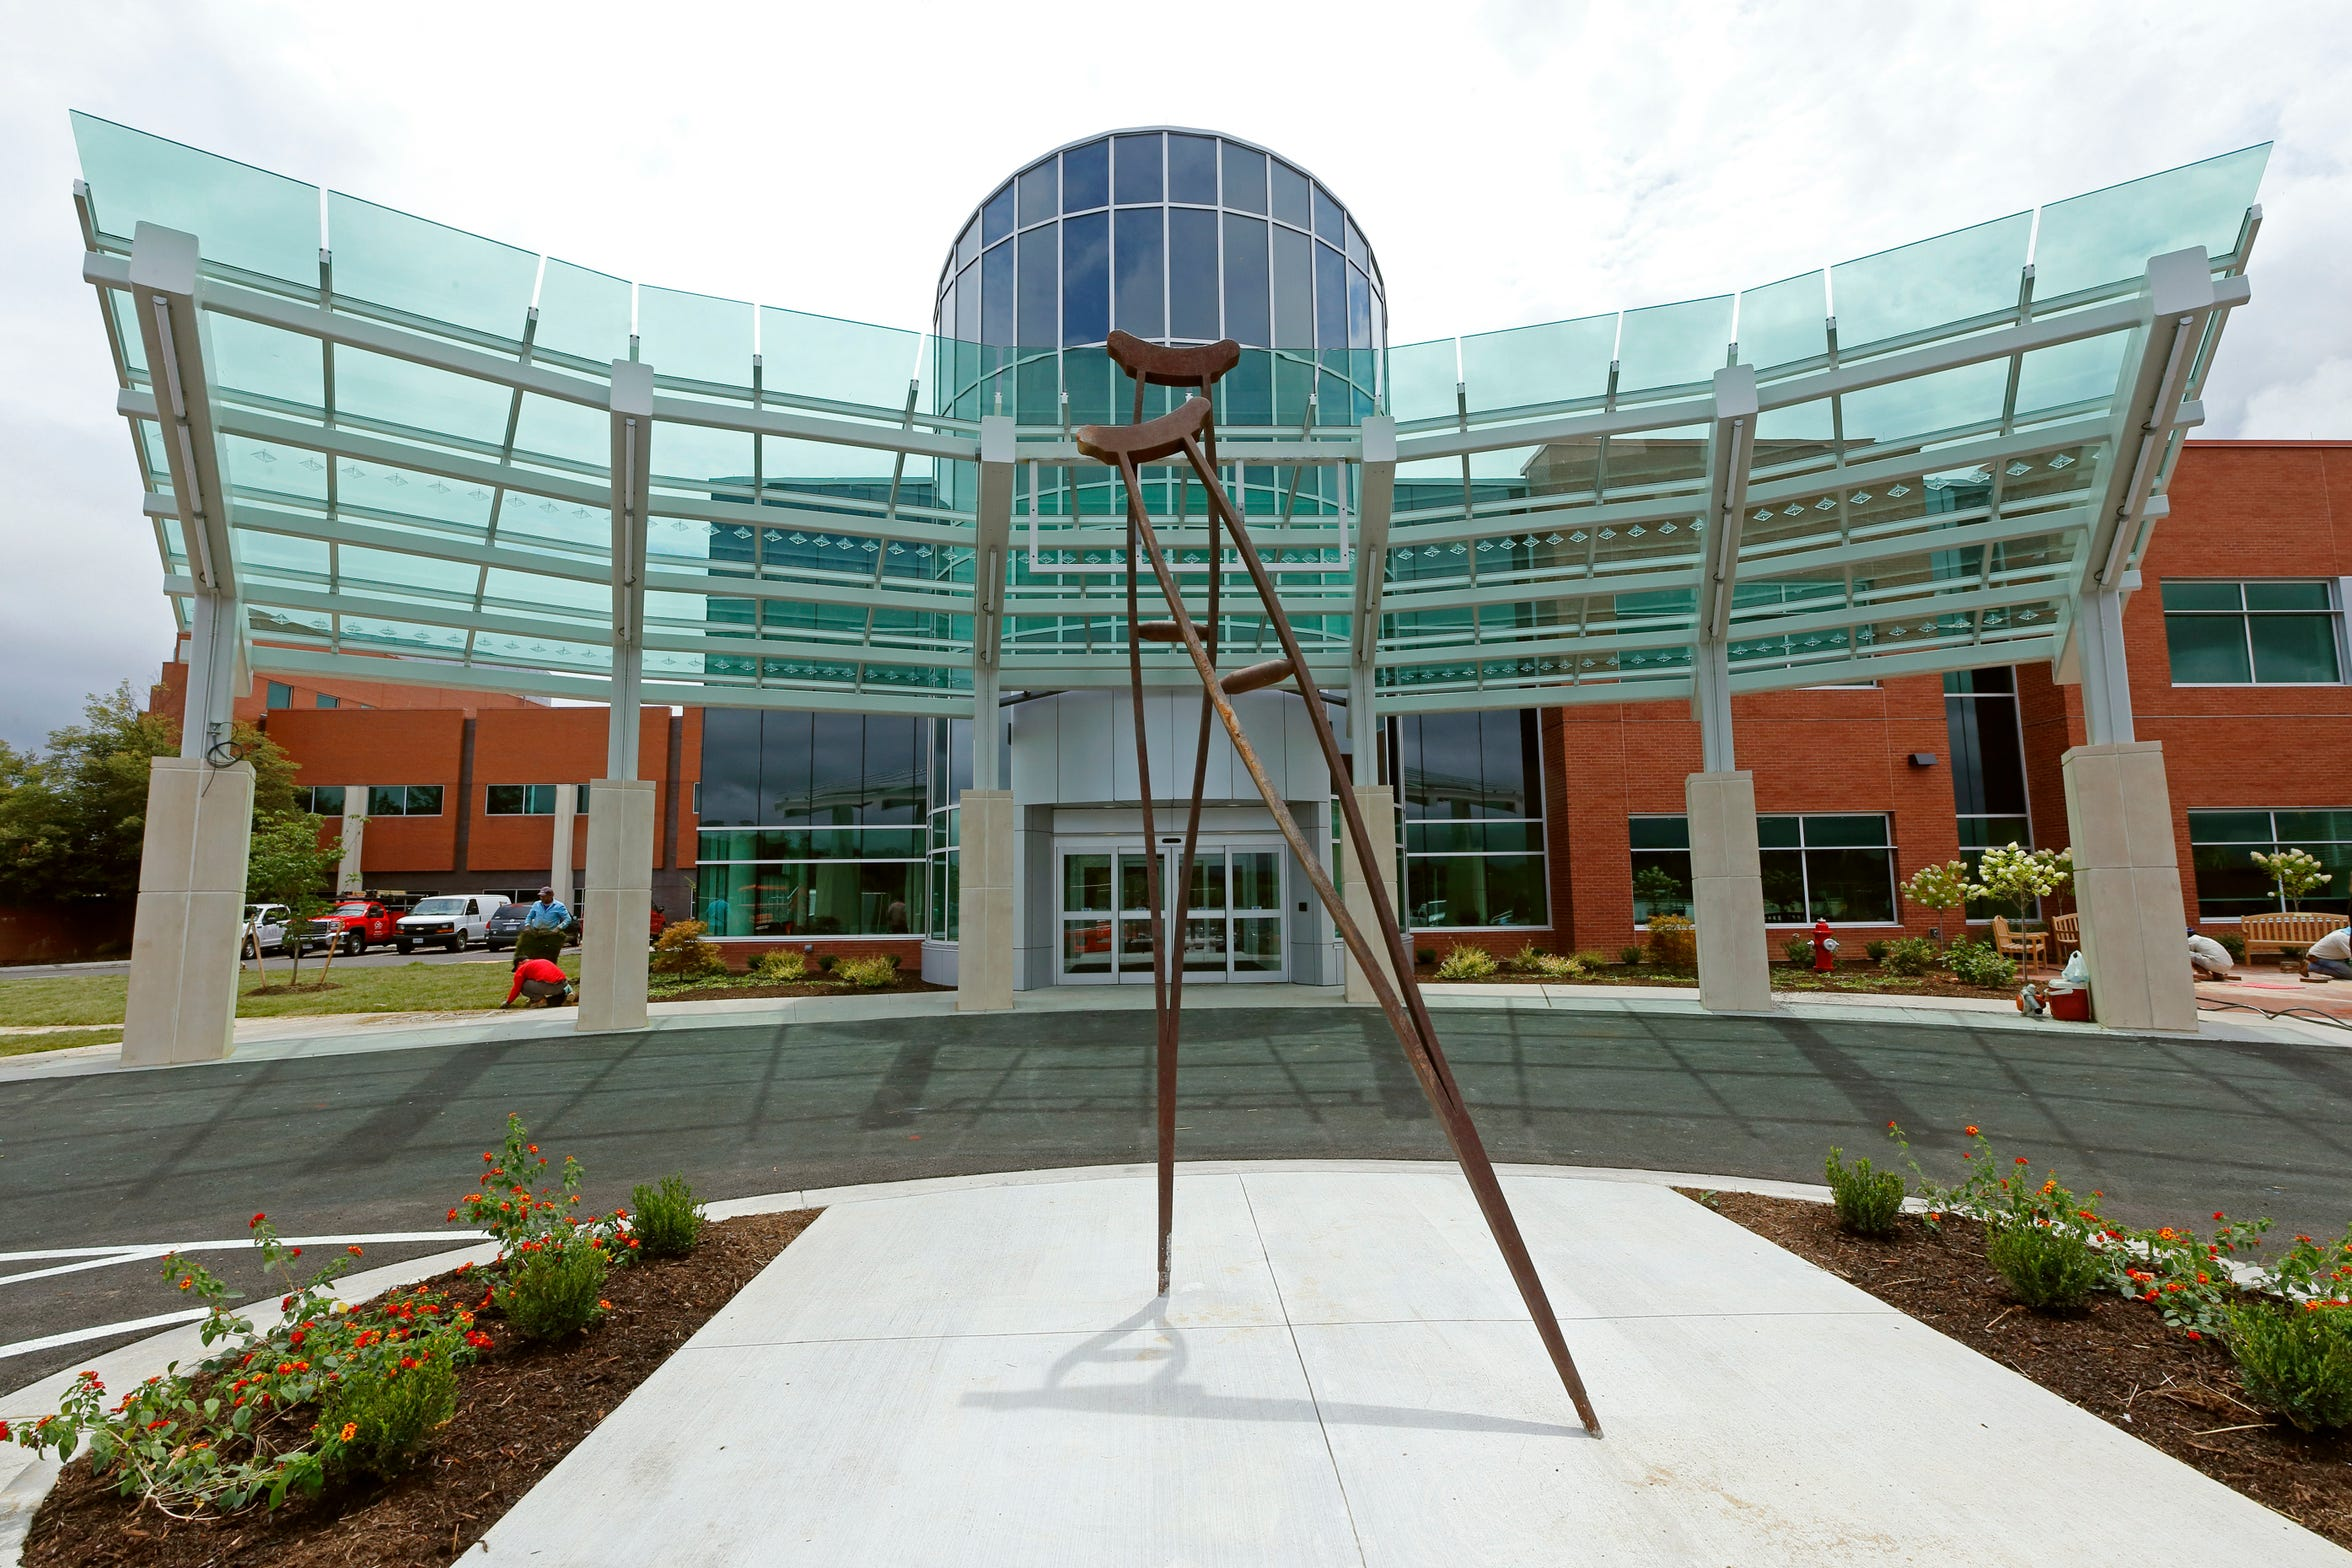 The crutches' sculpture created by the late Staunton sculptor Willy Ferguson, was re-installed outside the new entrance of Augusta Health's Emergency Department in Fishersville, Virginia.